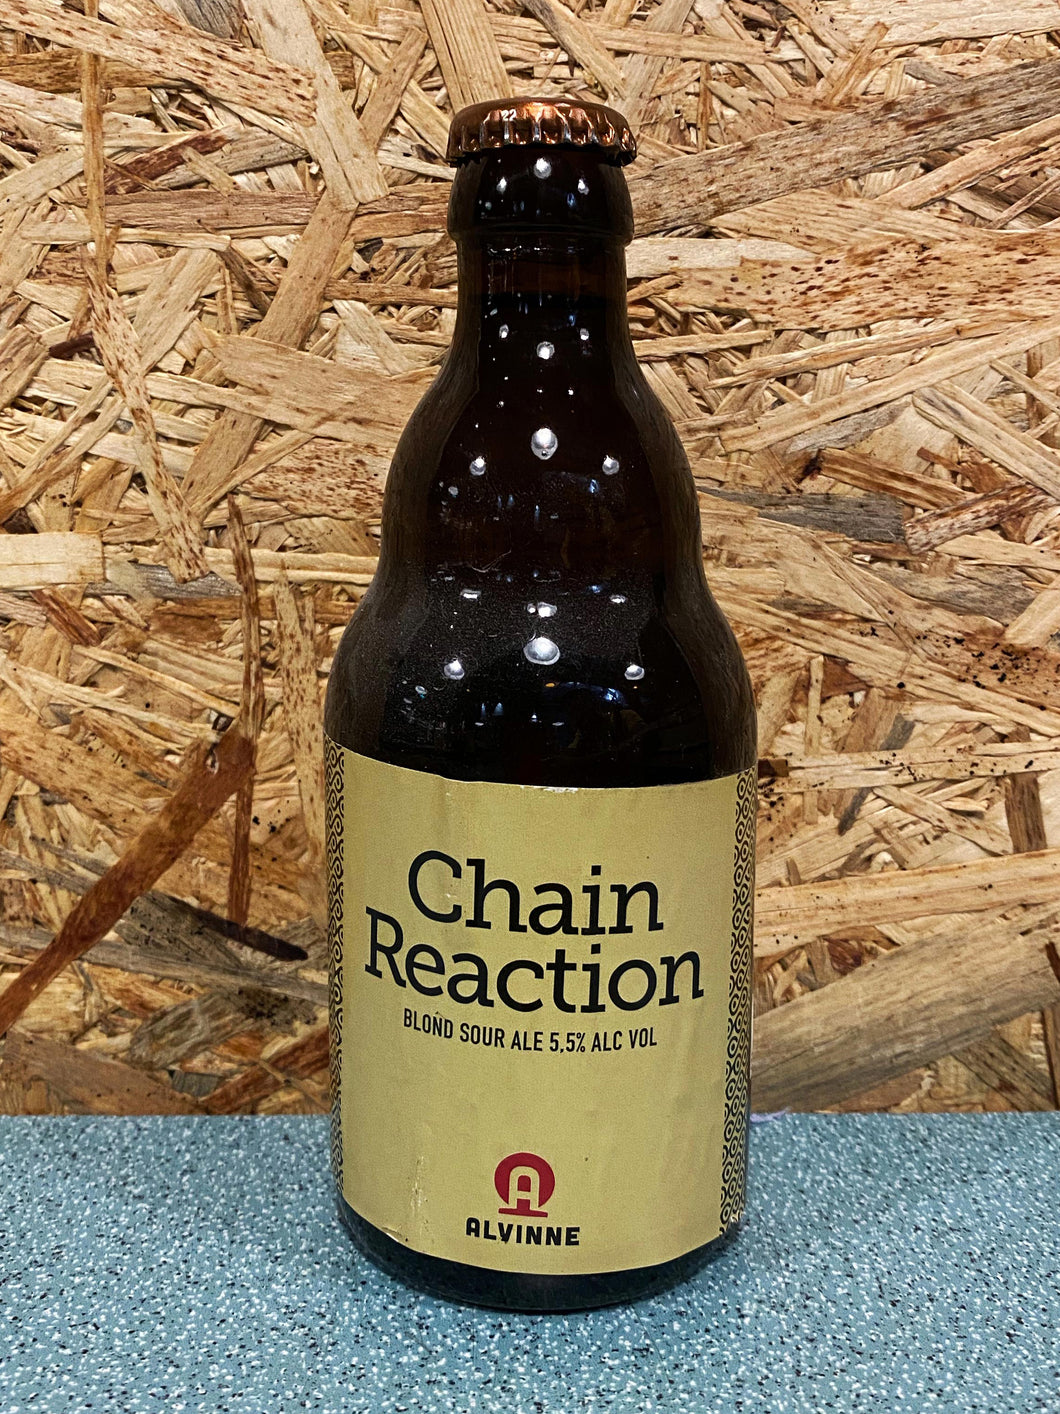 ALVINNE Chain Reaction